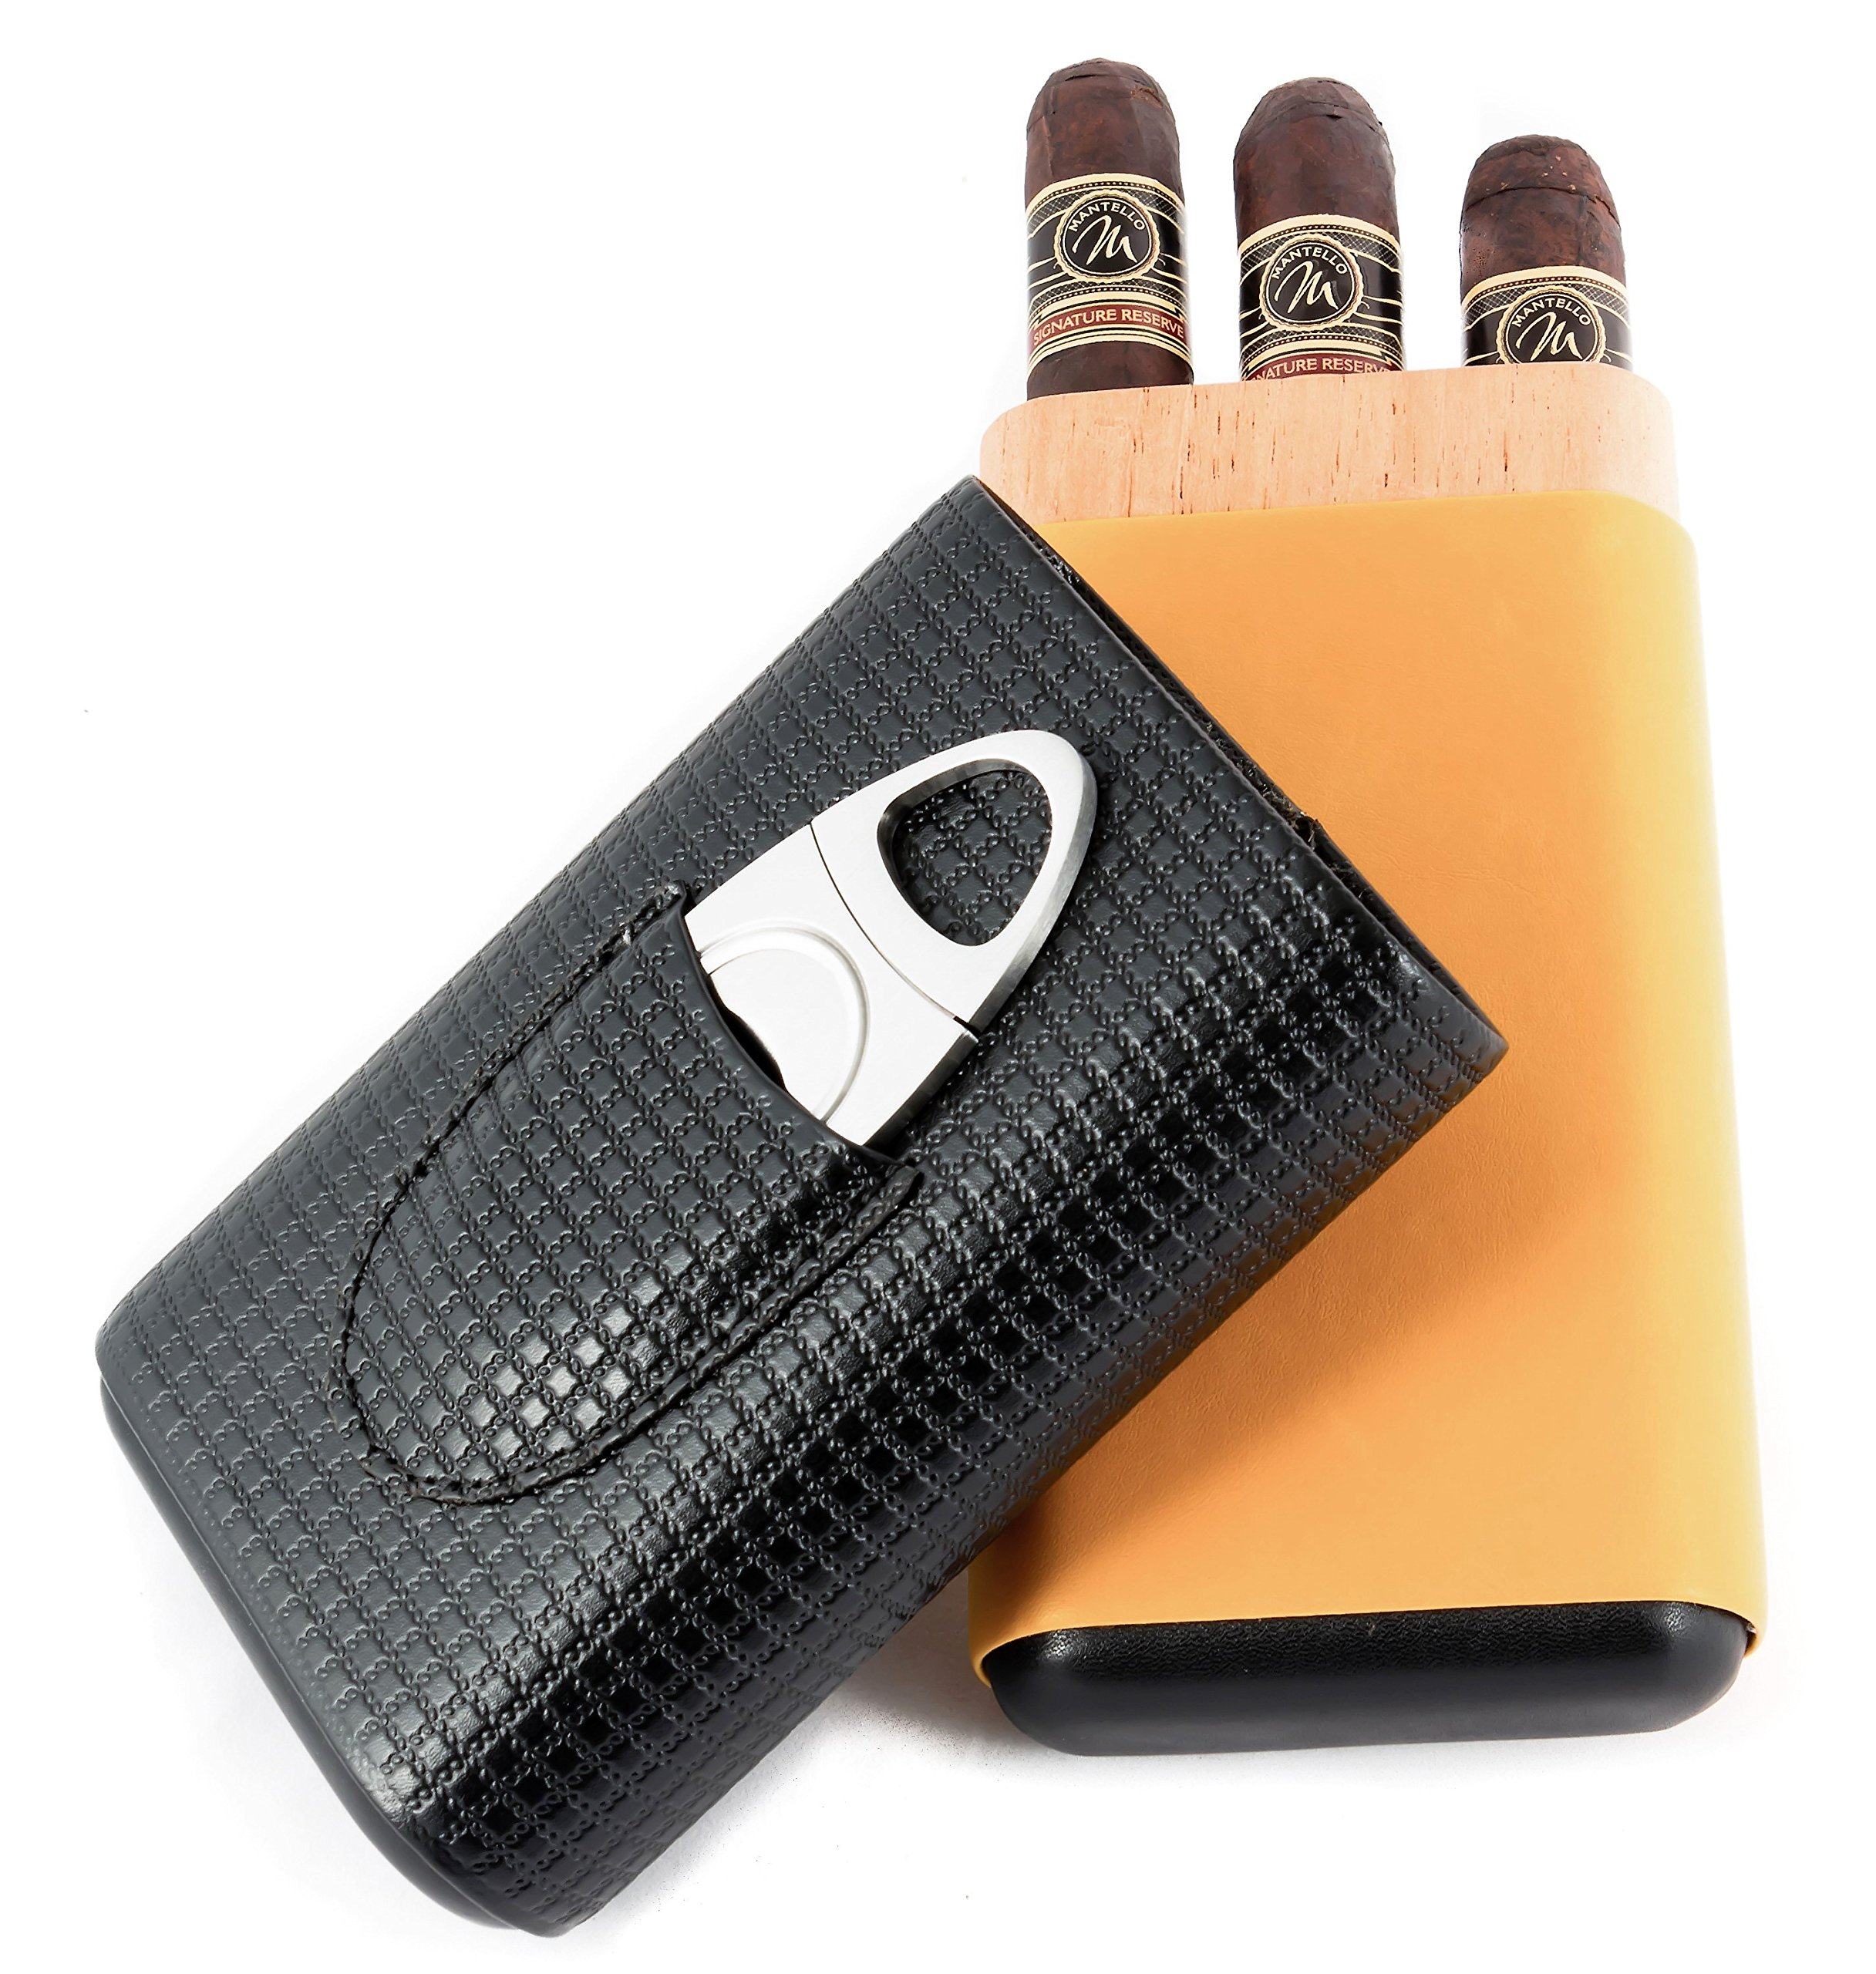 Mantello Executive Genuine Leather and Cedar Wood Cigar Case with Cutter